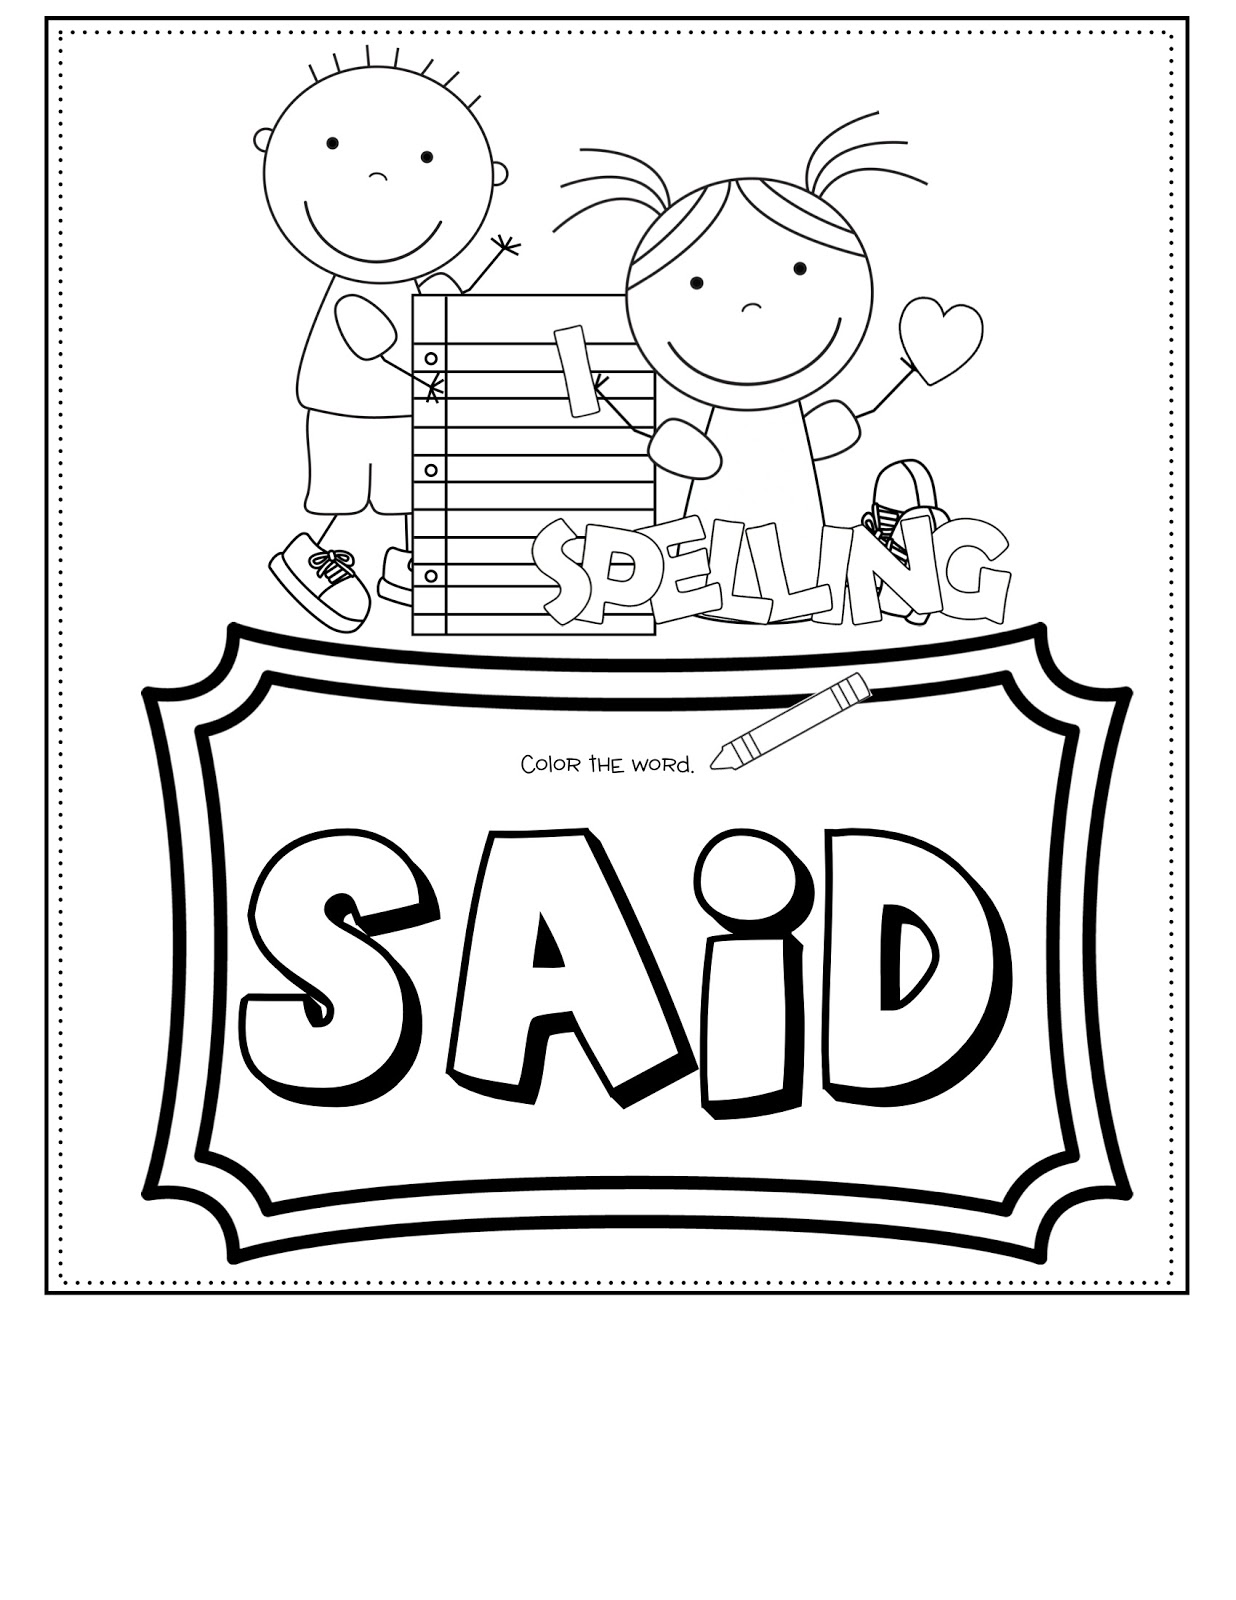 sight By Color Sight Worksheets word play book  Words printable